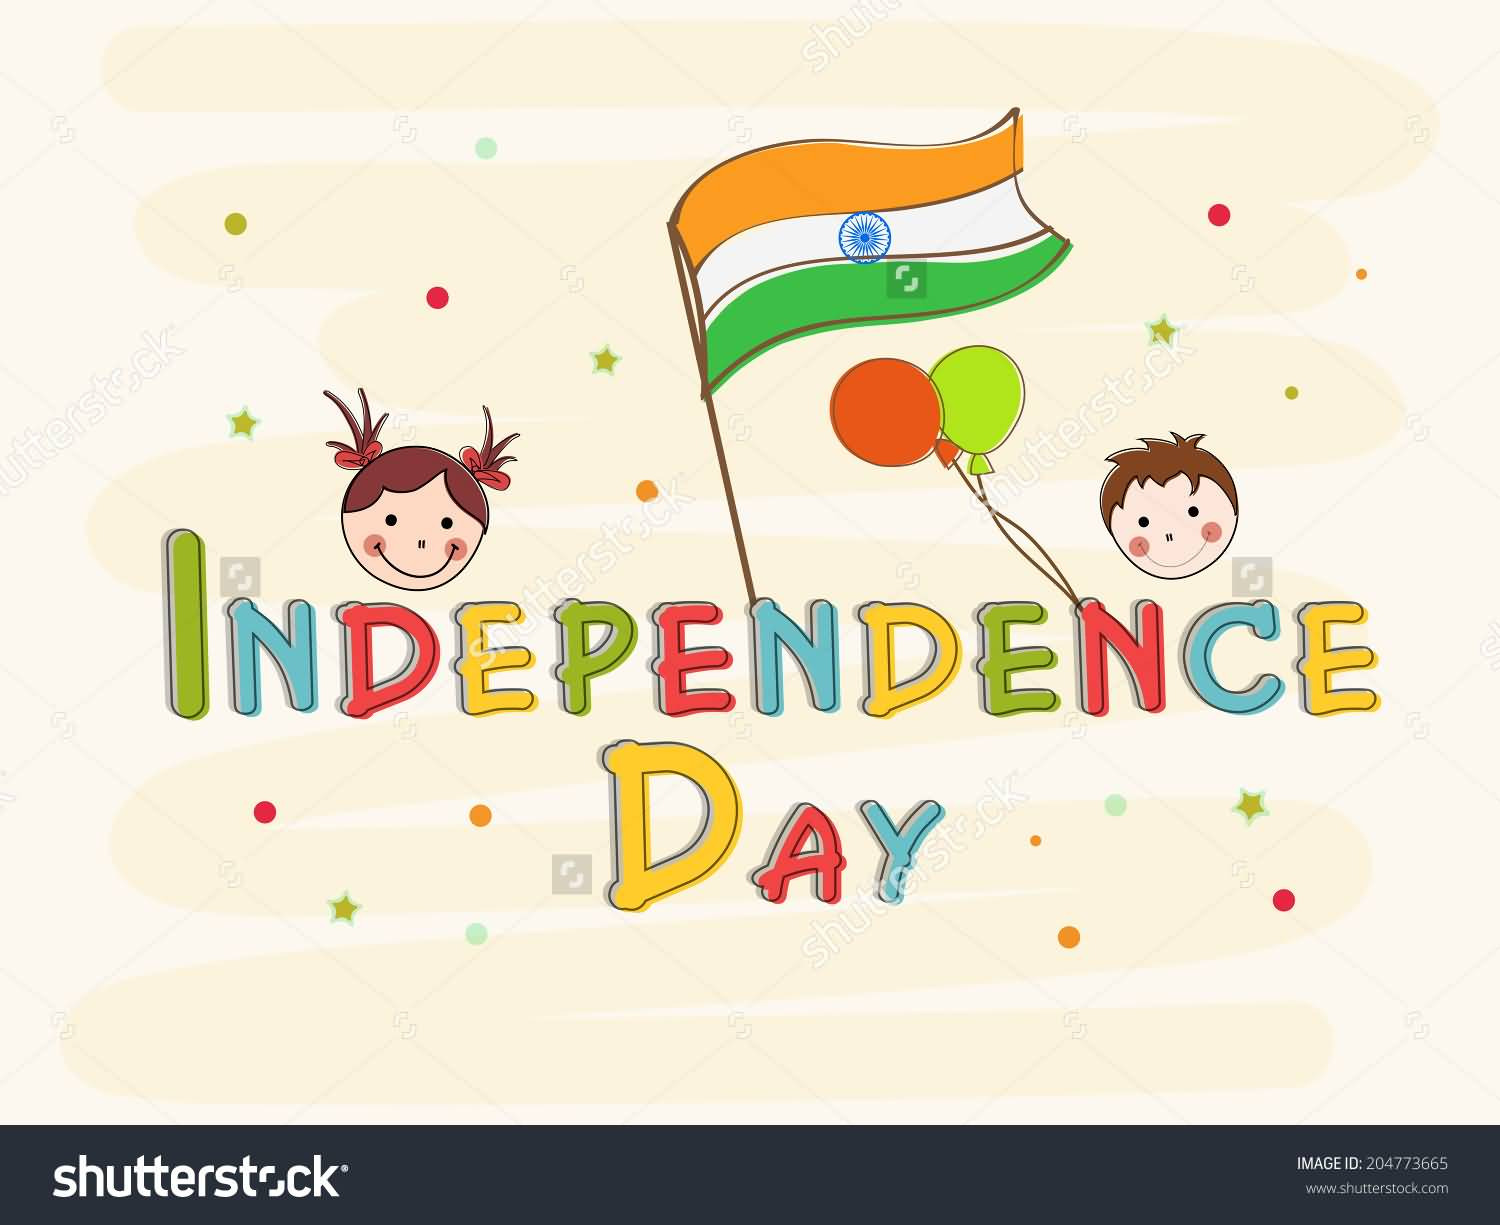 independence day of india wishes clipart image rh askideas com independence day clip art animated independence day clip art masonic